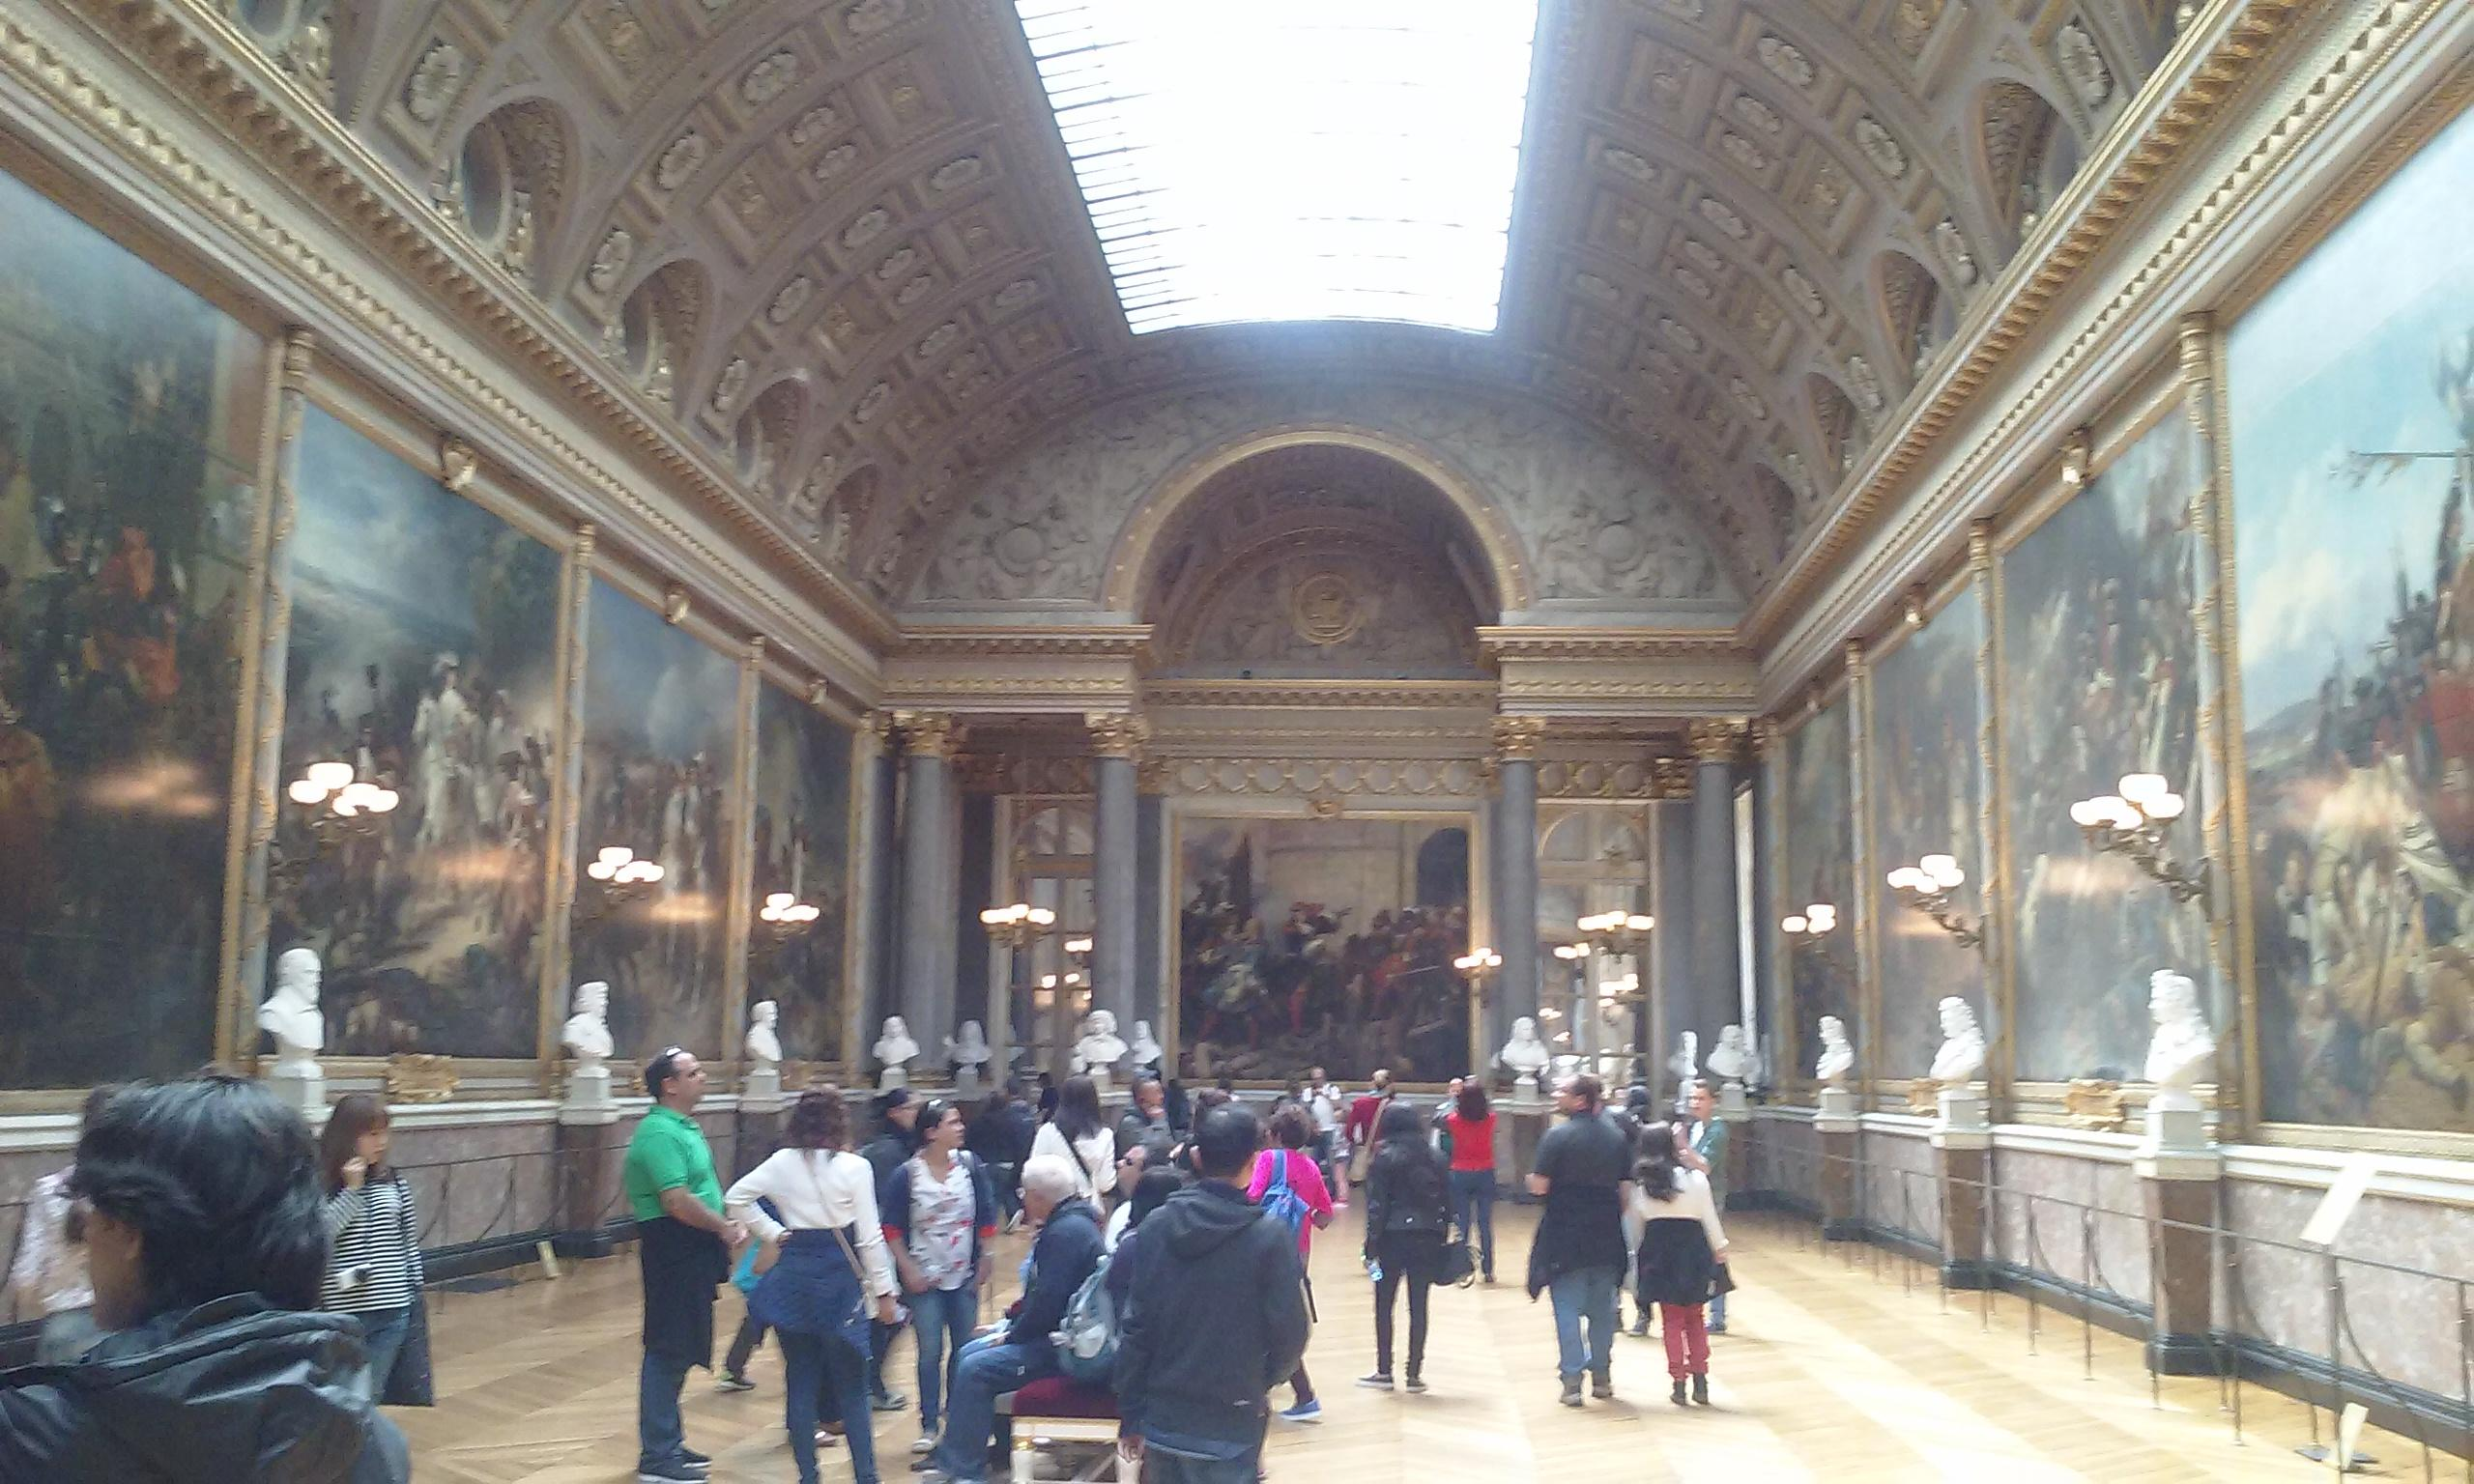 A hall with the military victories of France inside Versailles